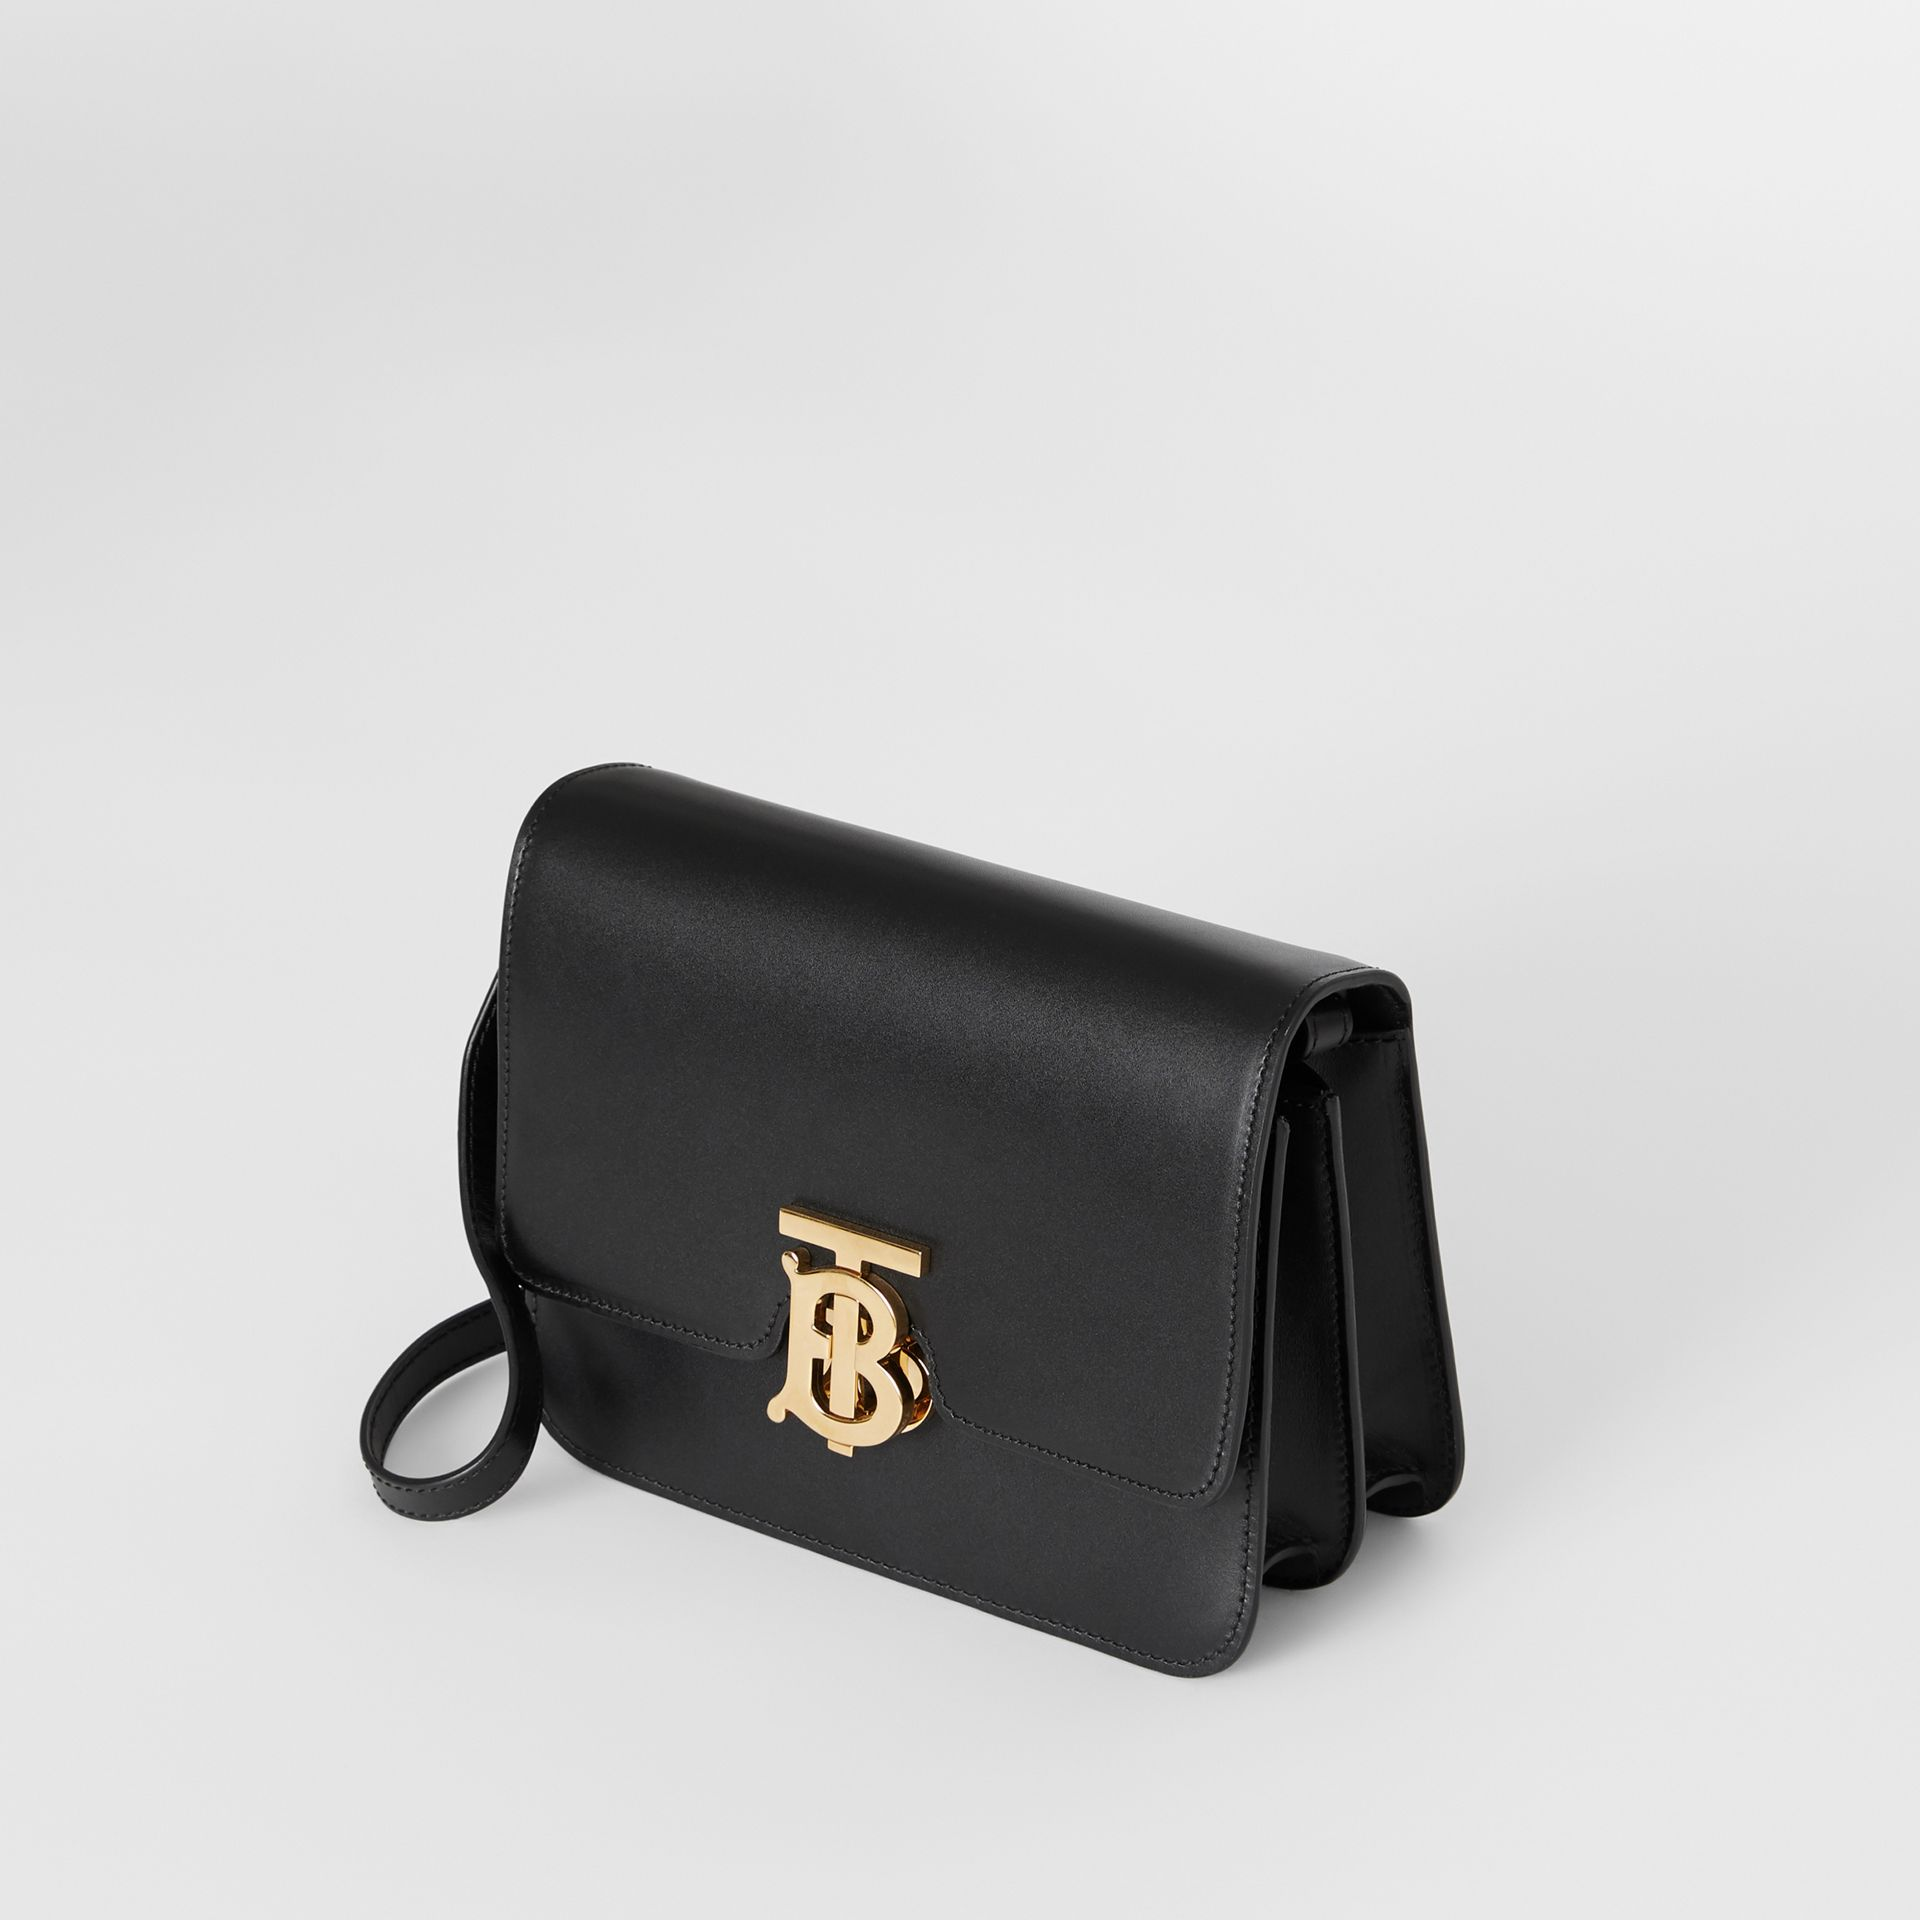 Small Leather TB Bag in Black - Women | Burberry - gallery image 3